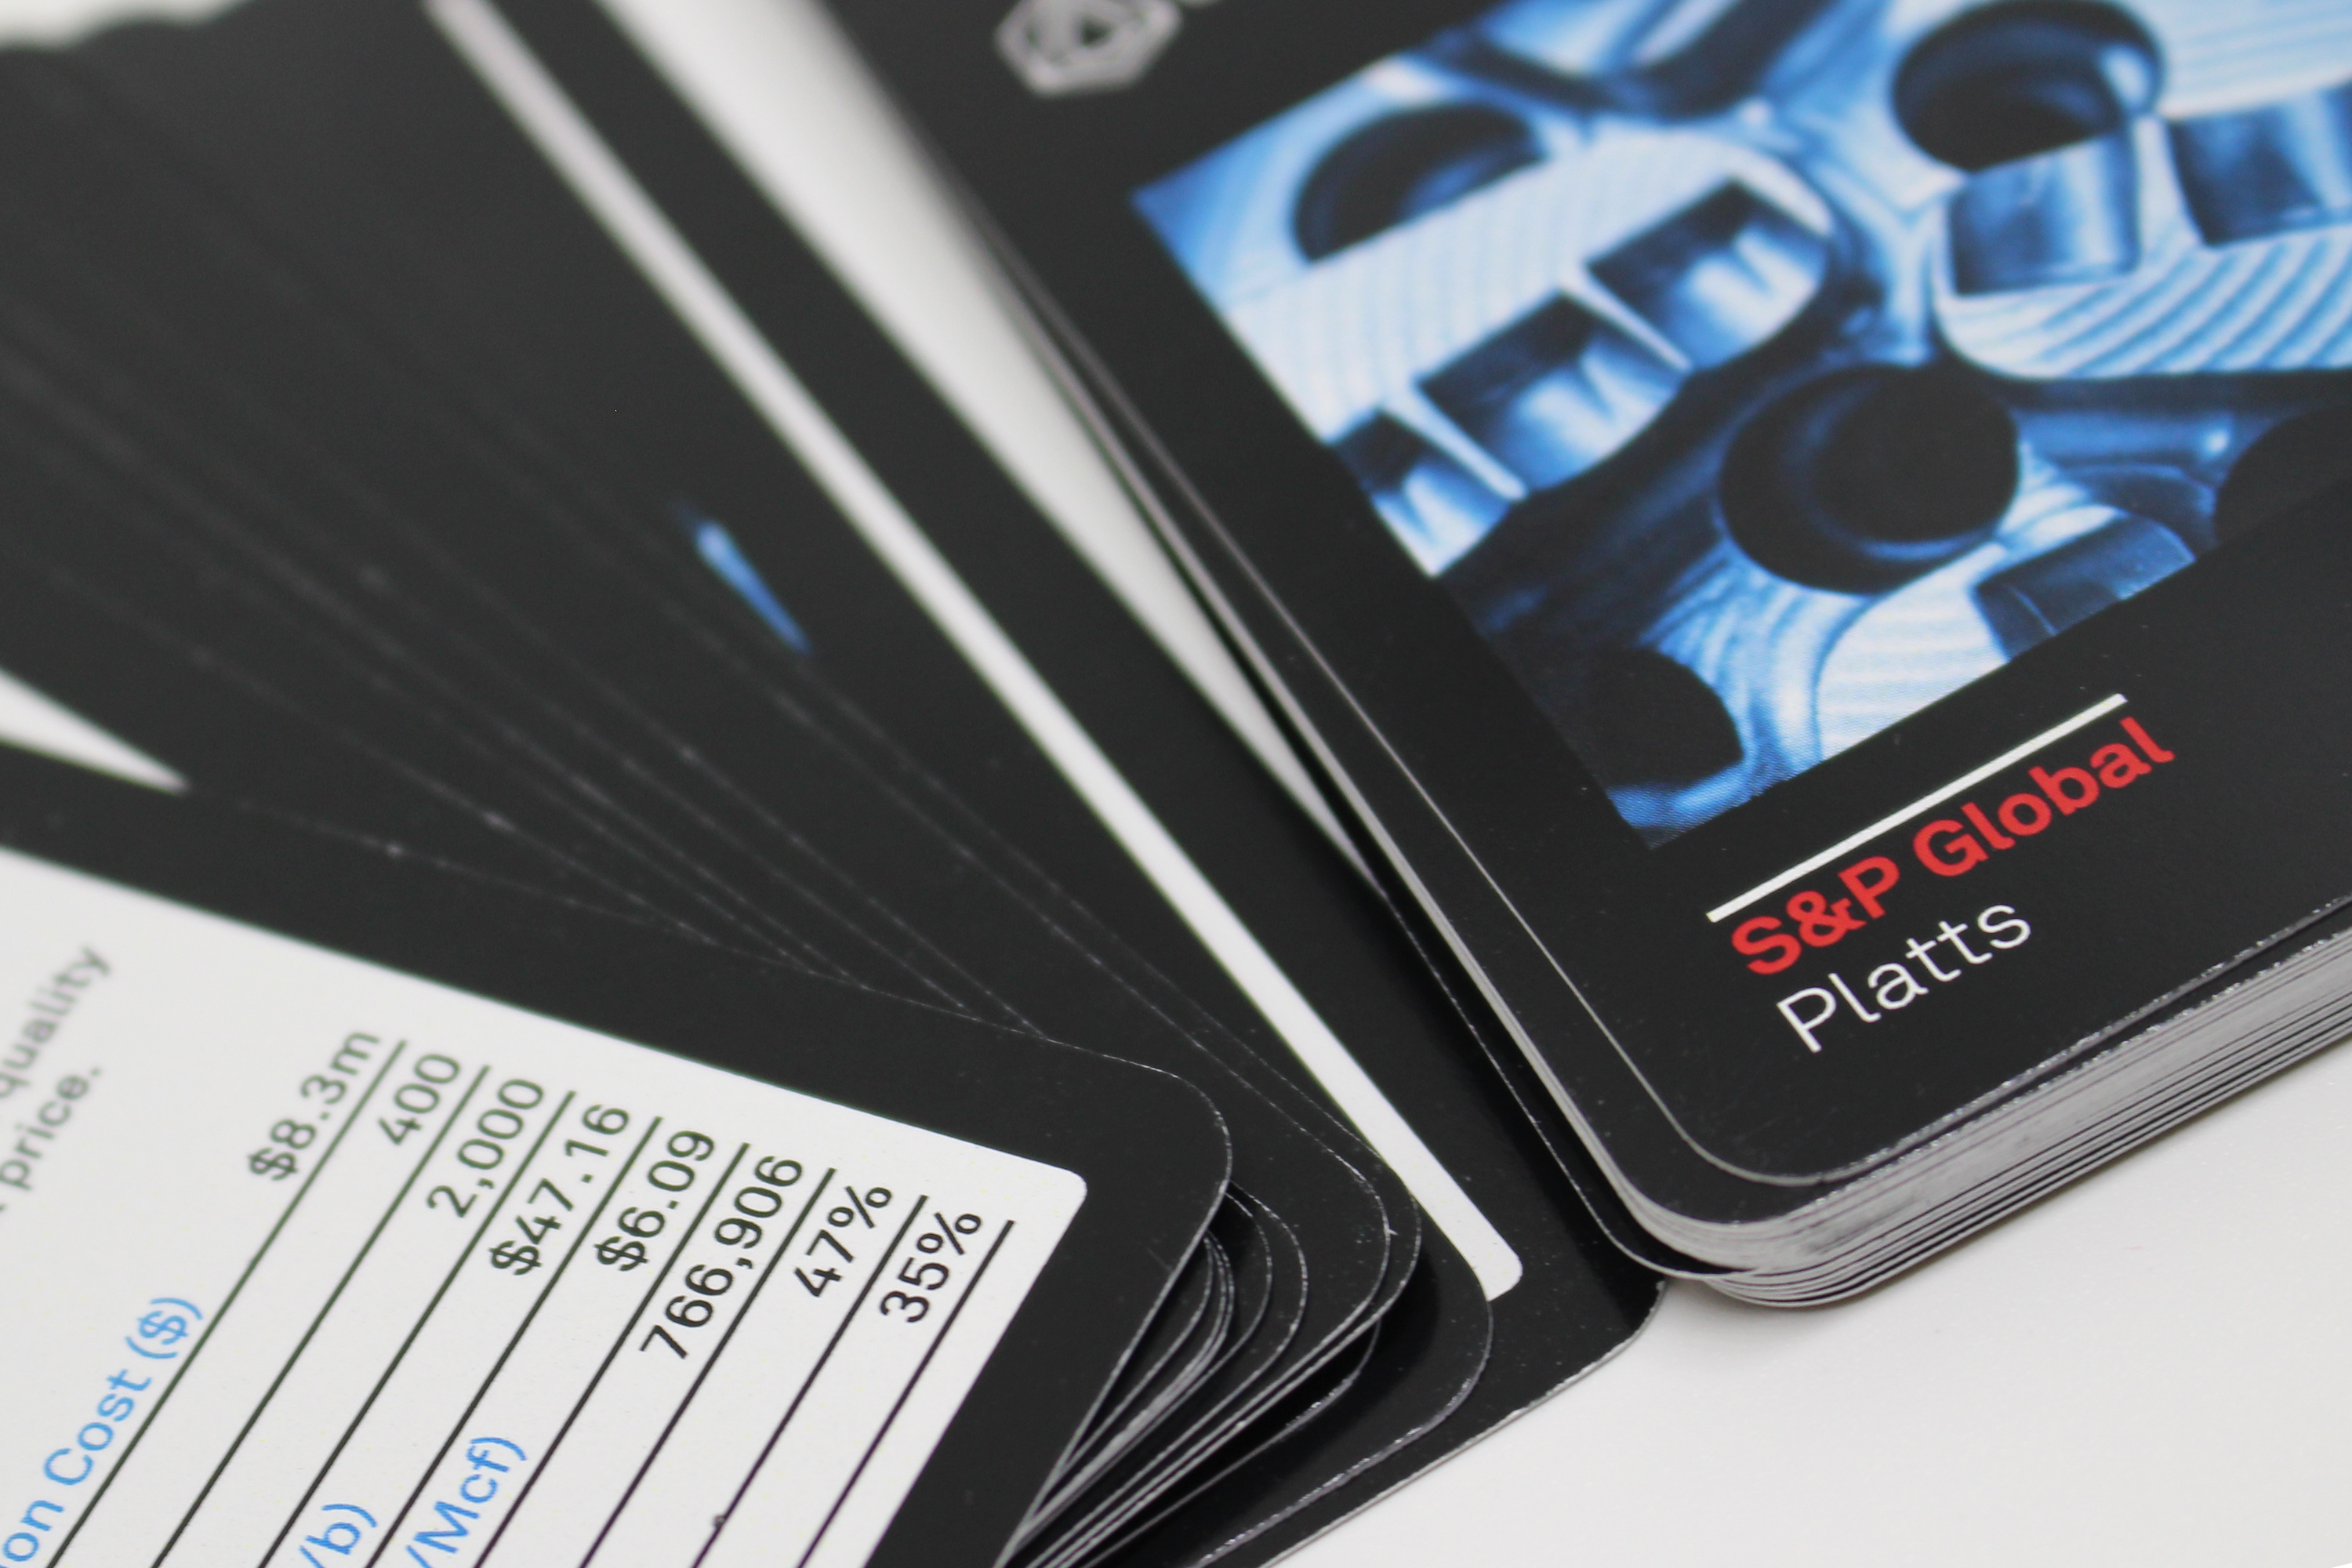 S&P Platts Branded Custom Playing Cards